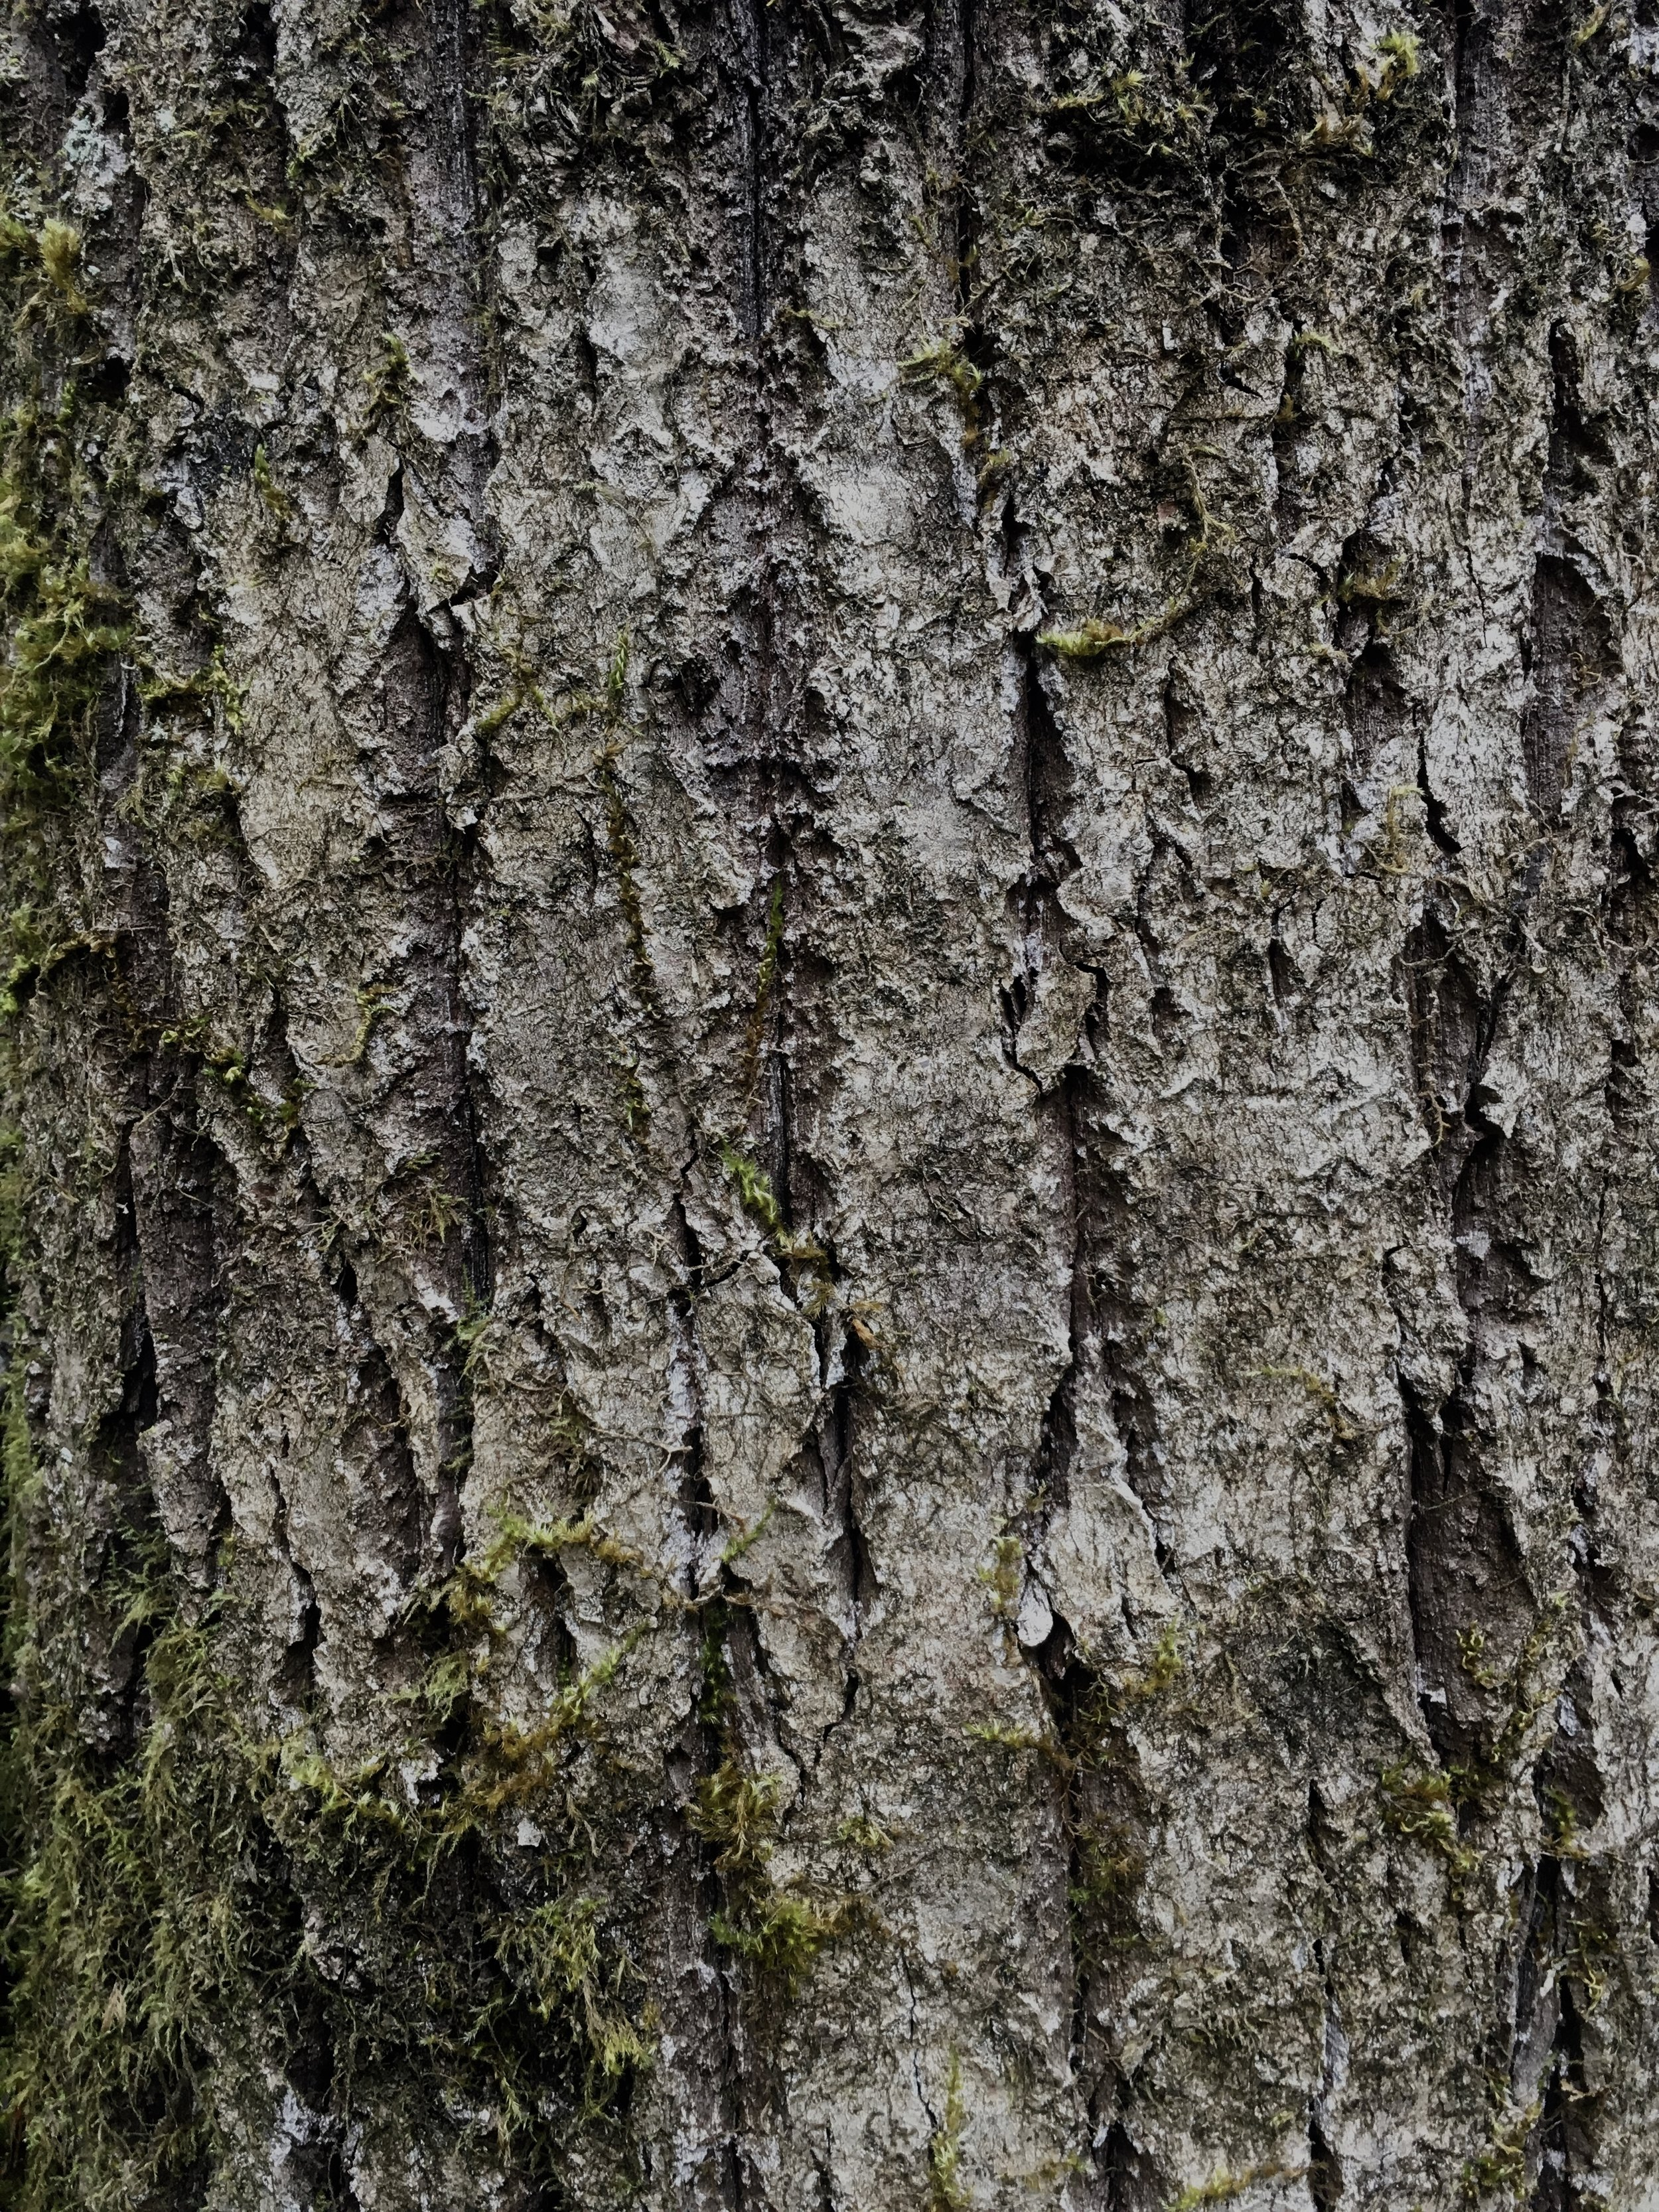 Cottonwood is known for its deep grooves found in the bark of older tree trunks.